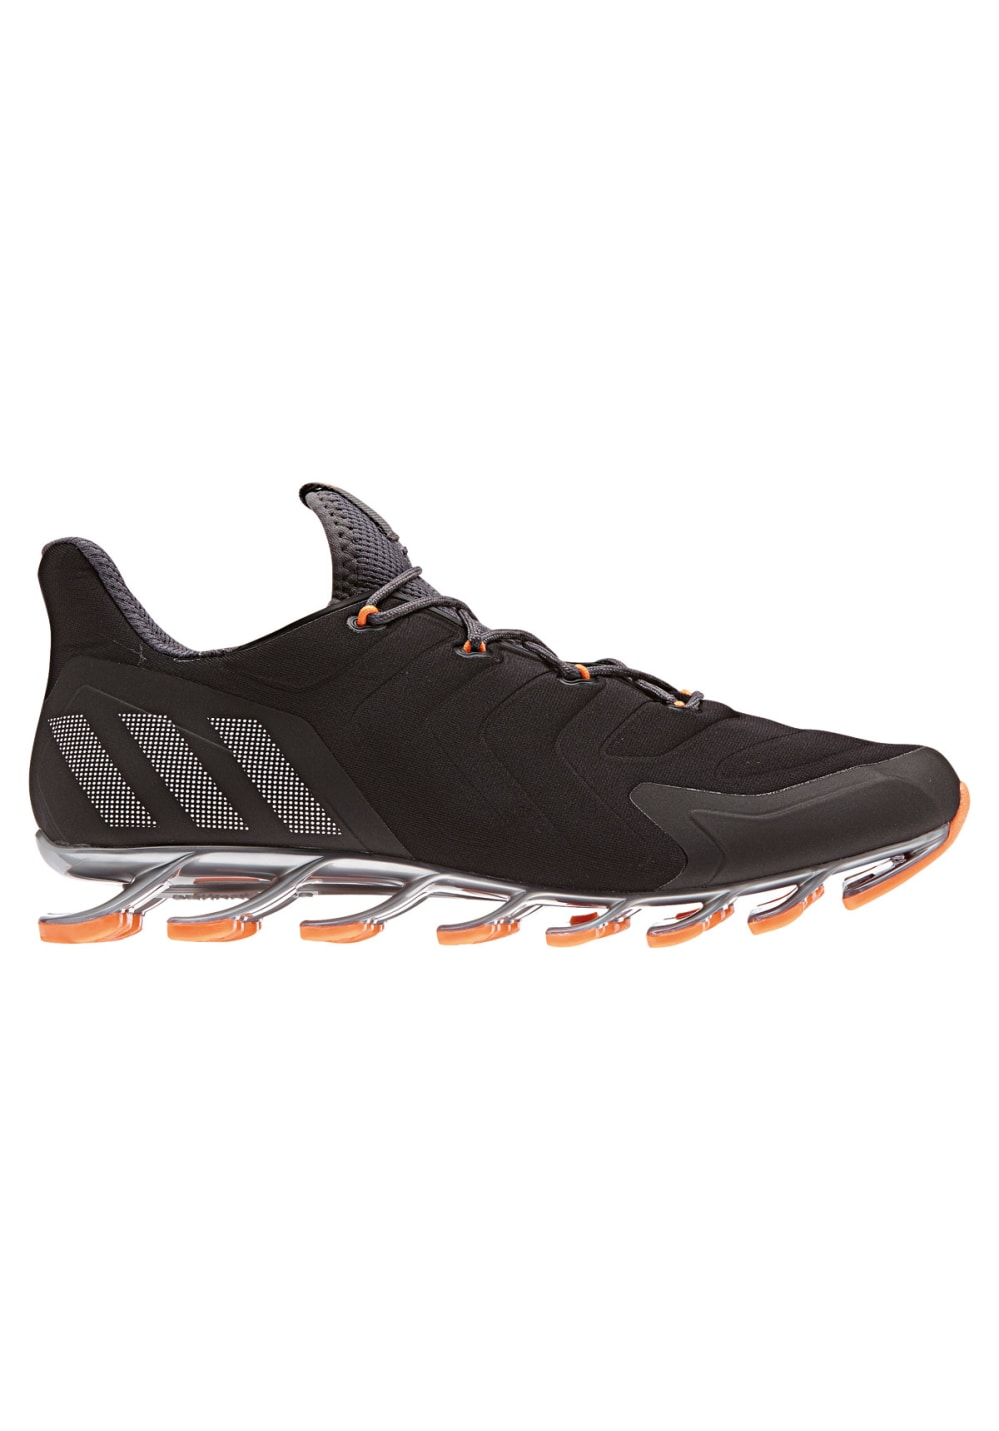 promo code d0d65 25b3d adidas Springblade Nanaya - Running shoes for Women - Black